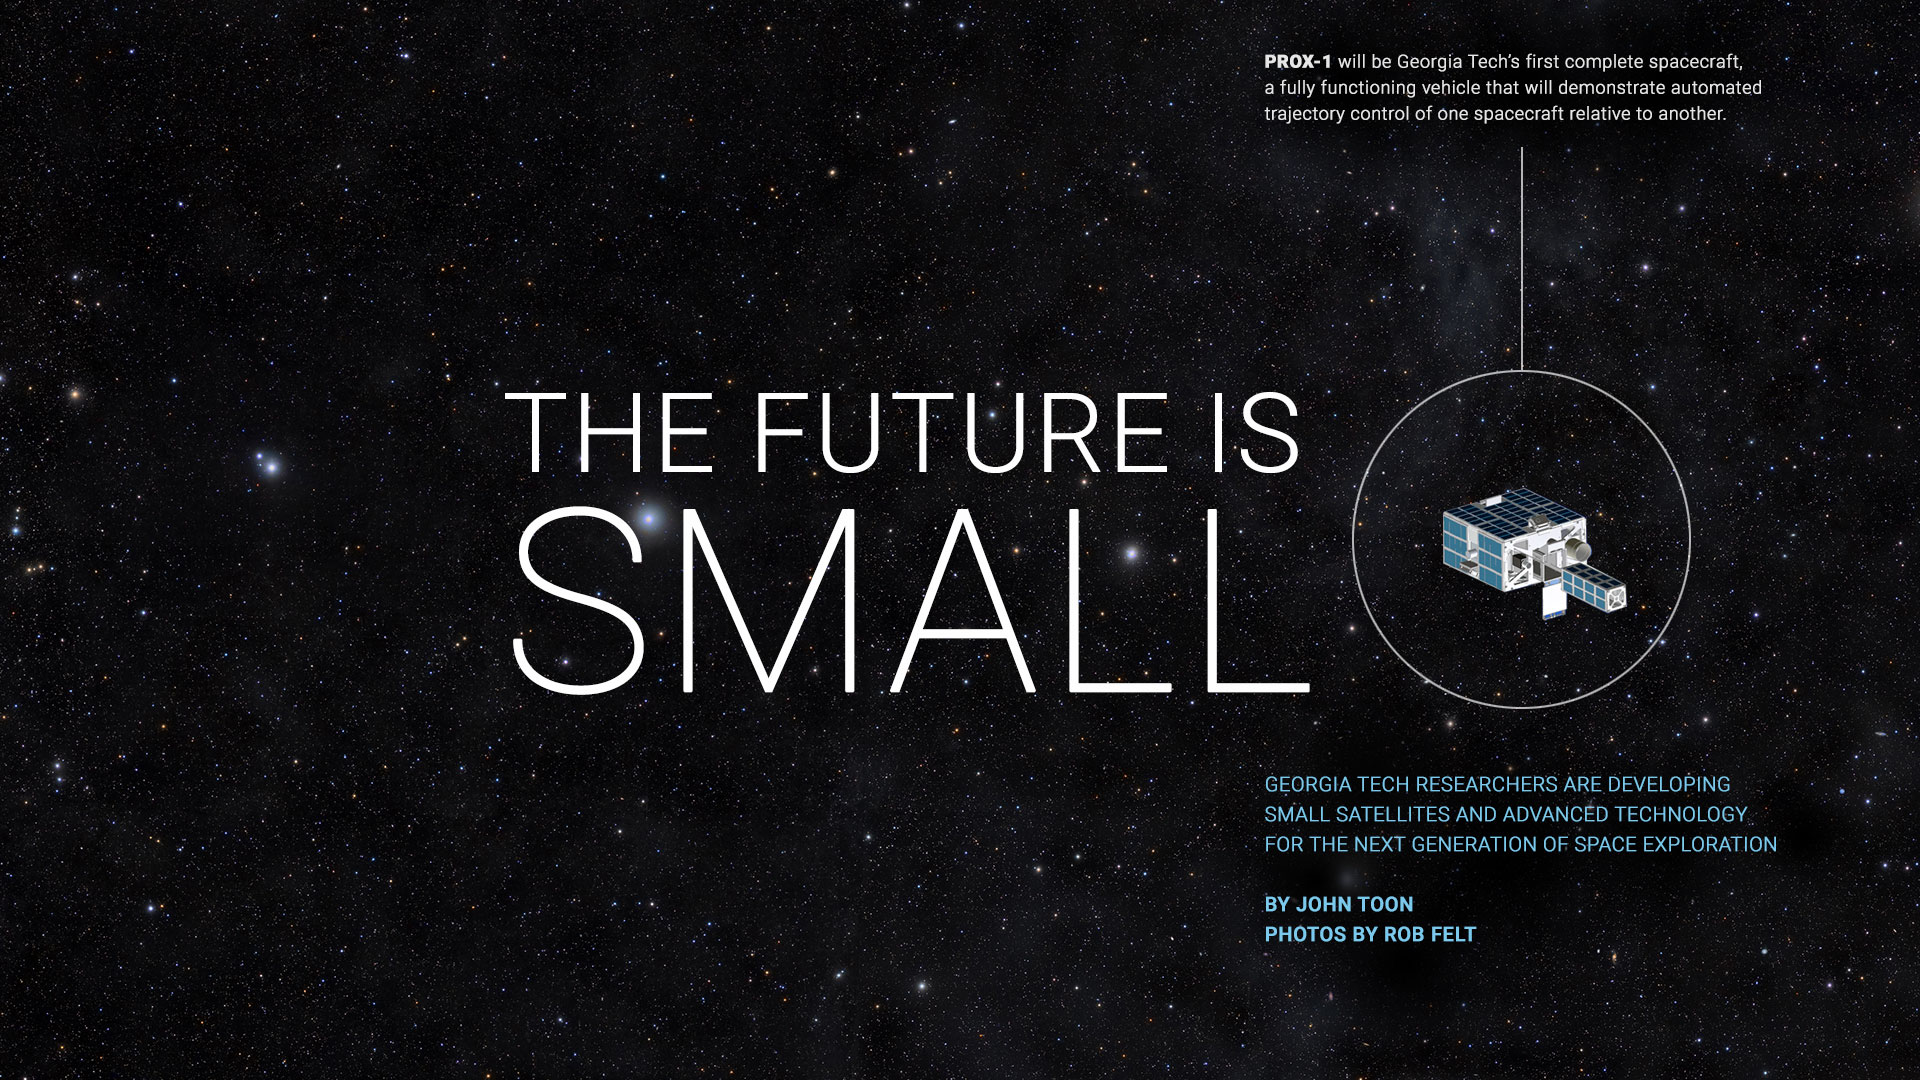 The Future is Small - By John Toon, Photos by Rob Felt